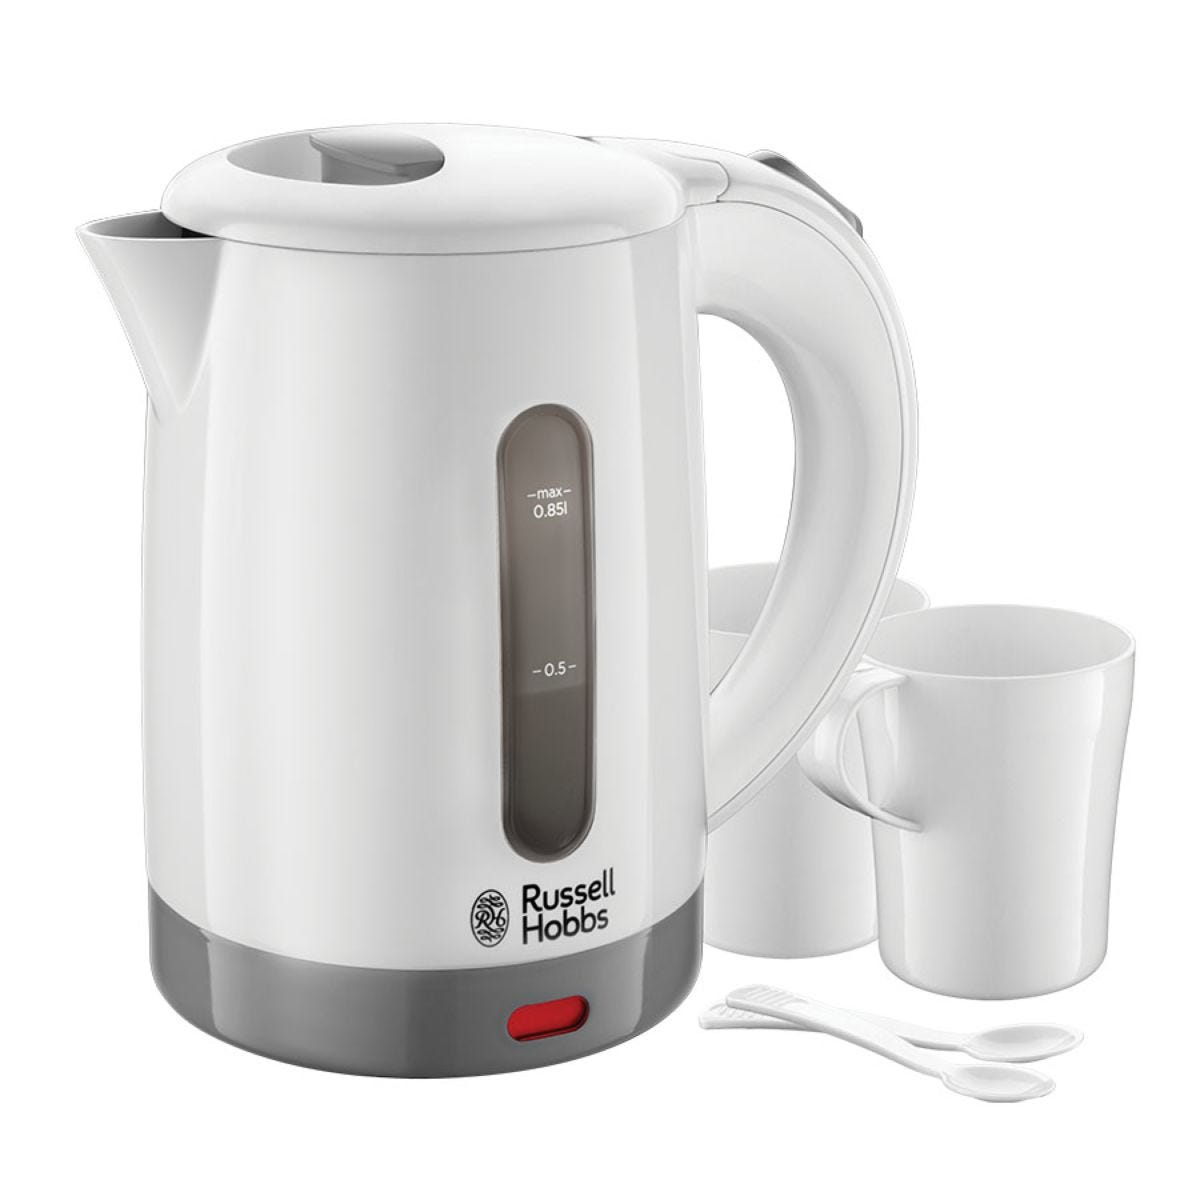 Russell Hobbs 23840 Compact 1000W Travel Kettle – White